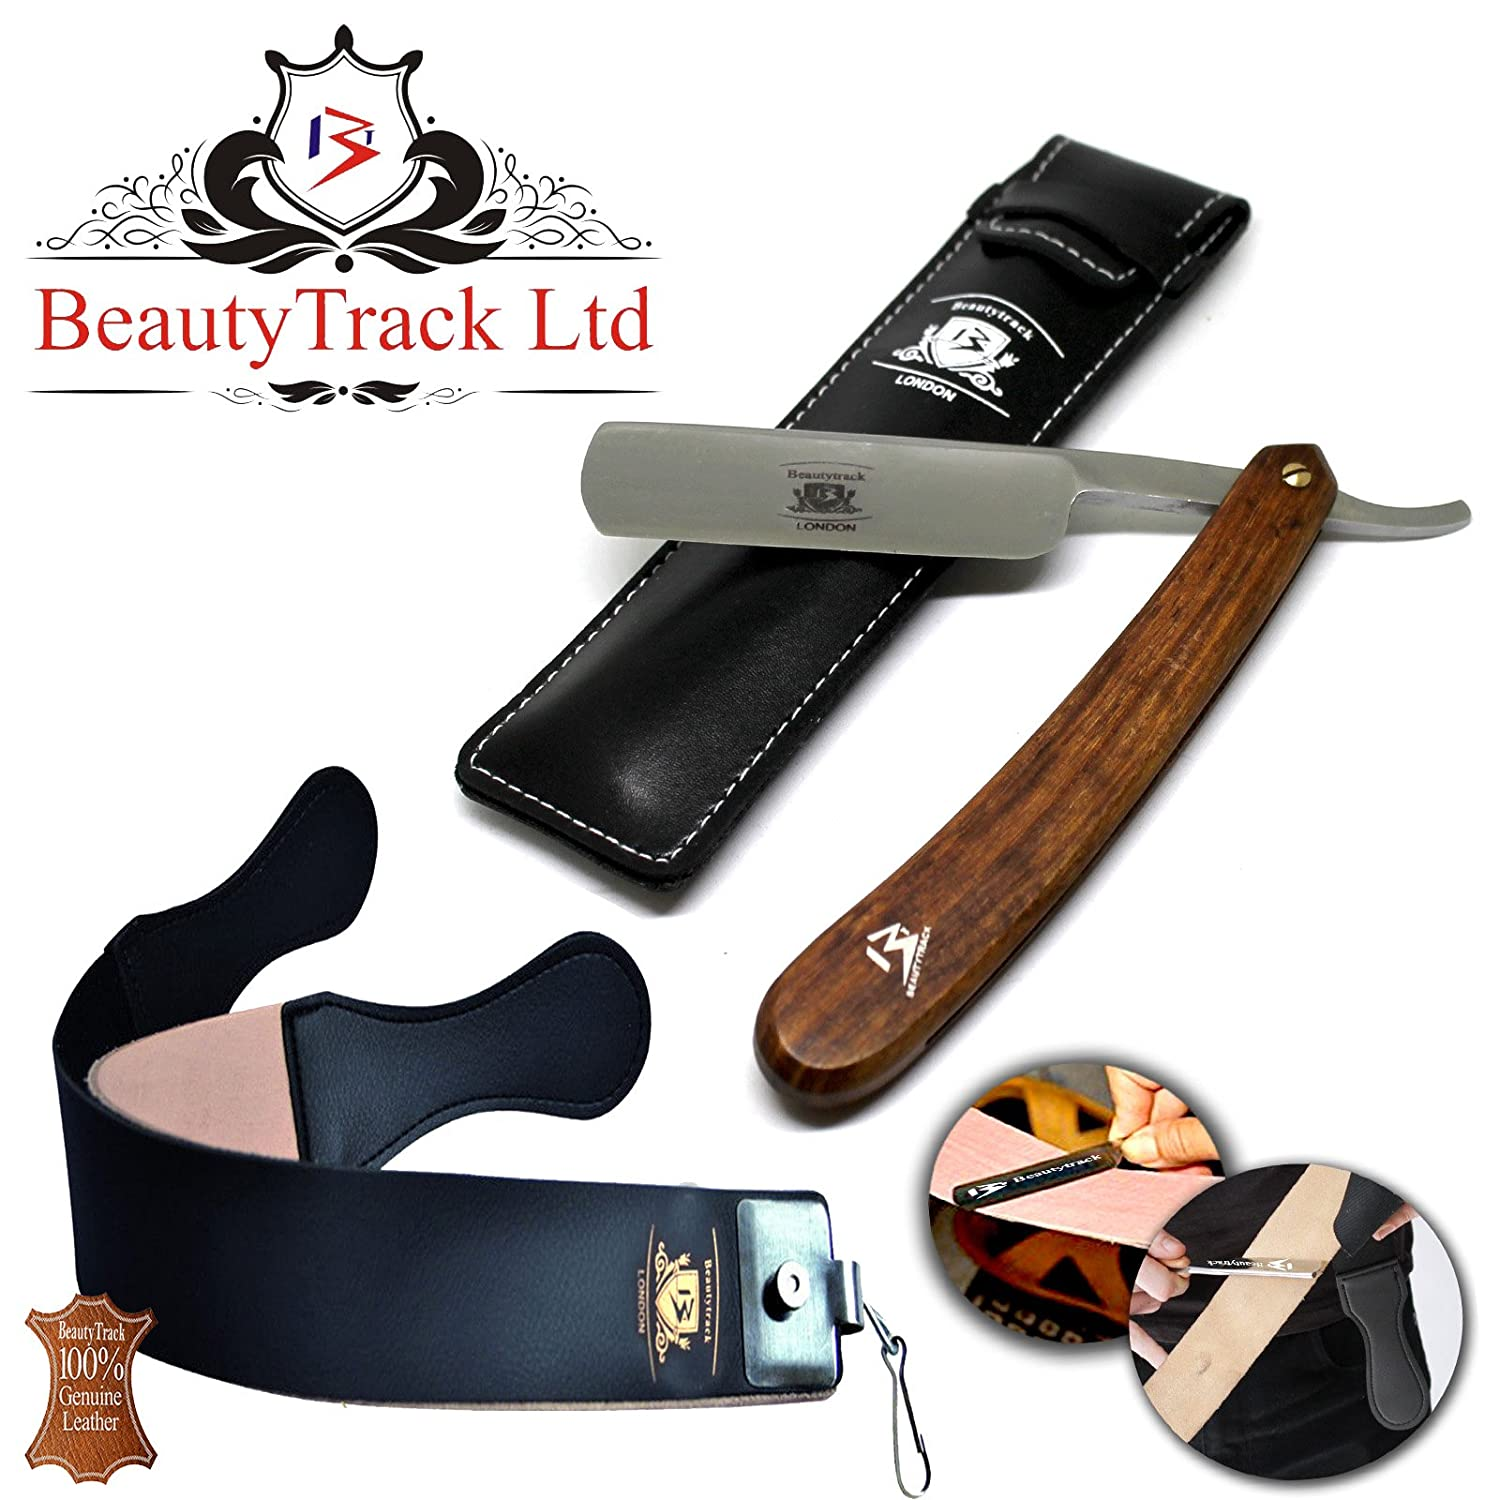 BeautyTrack - Pure Wood Handmade Straight Wet Shaving Cut throat Razor Shaver Barber Razors + leather strop - vintage shaving kit for men - Superb Gift ideas